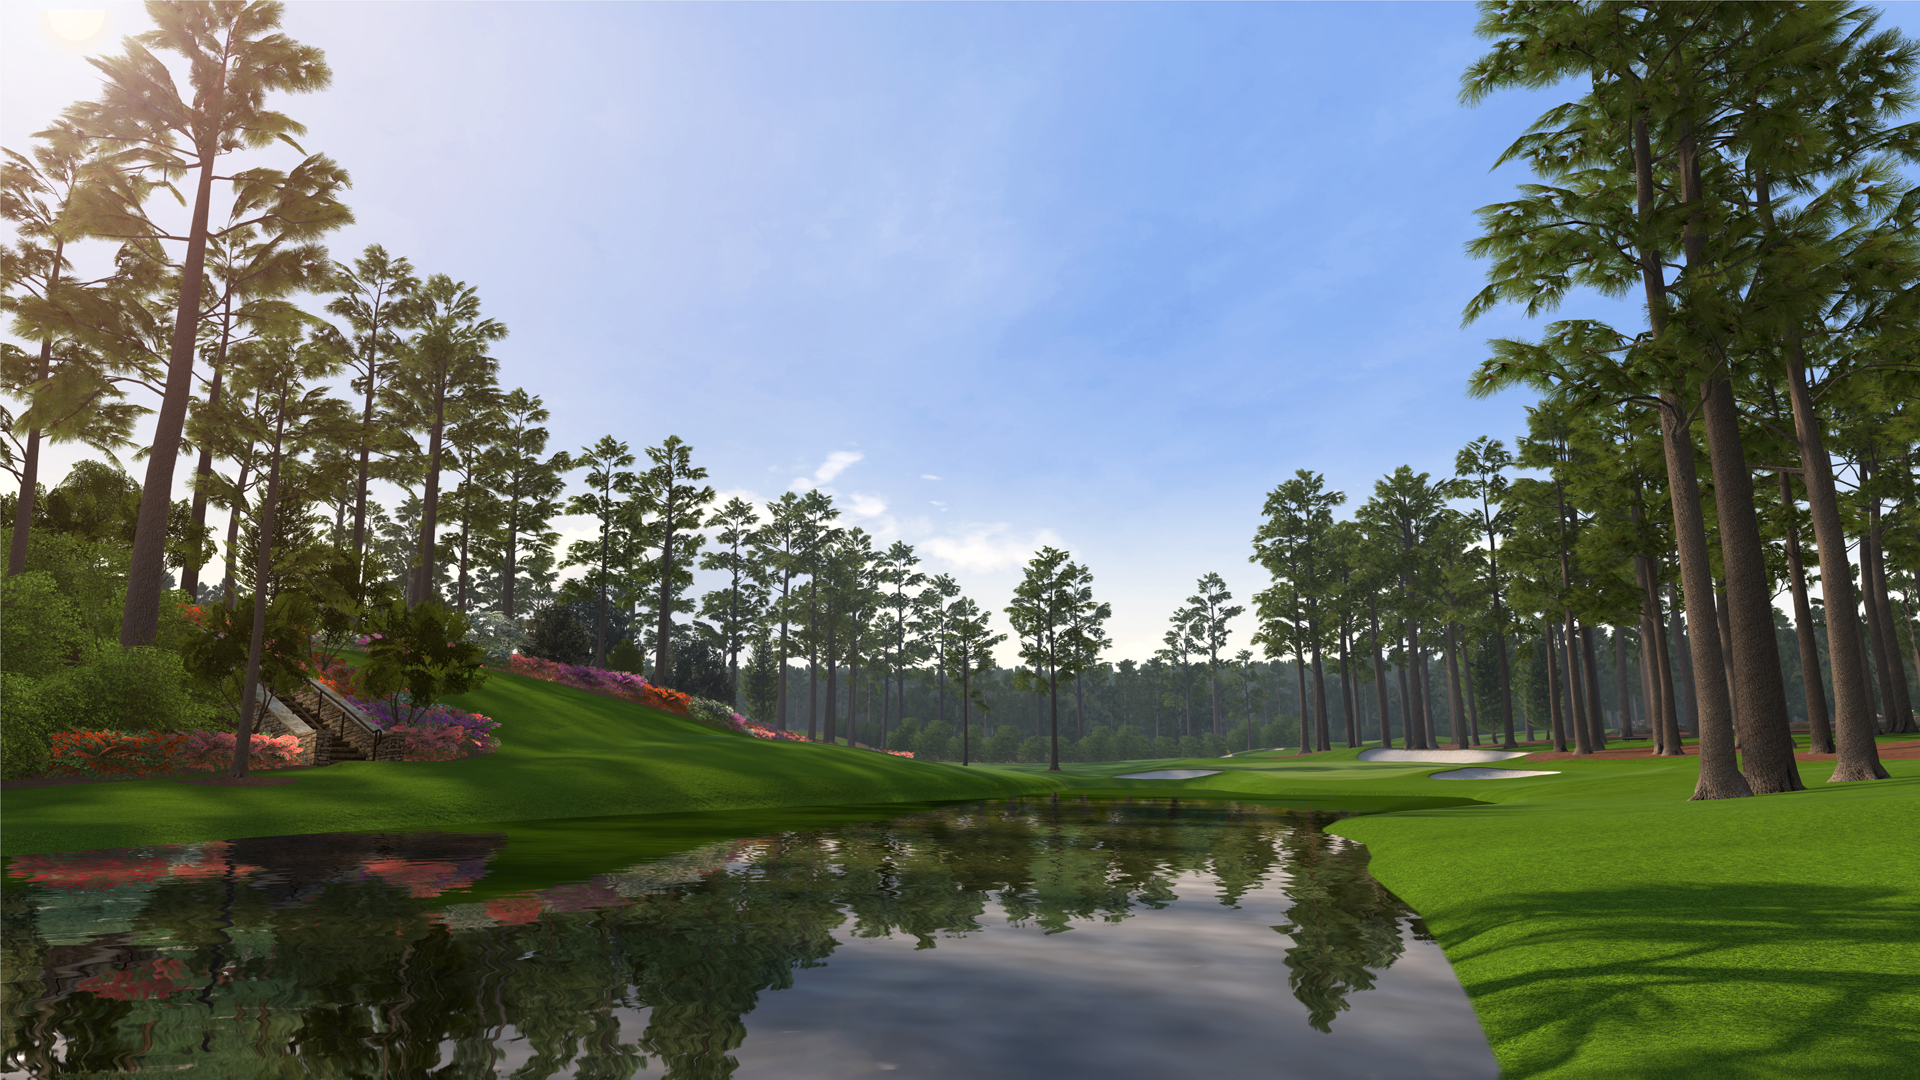 Golf Course Green Gras With Trees And Lake 1920x1080 HD Golf 1920x1080